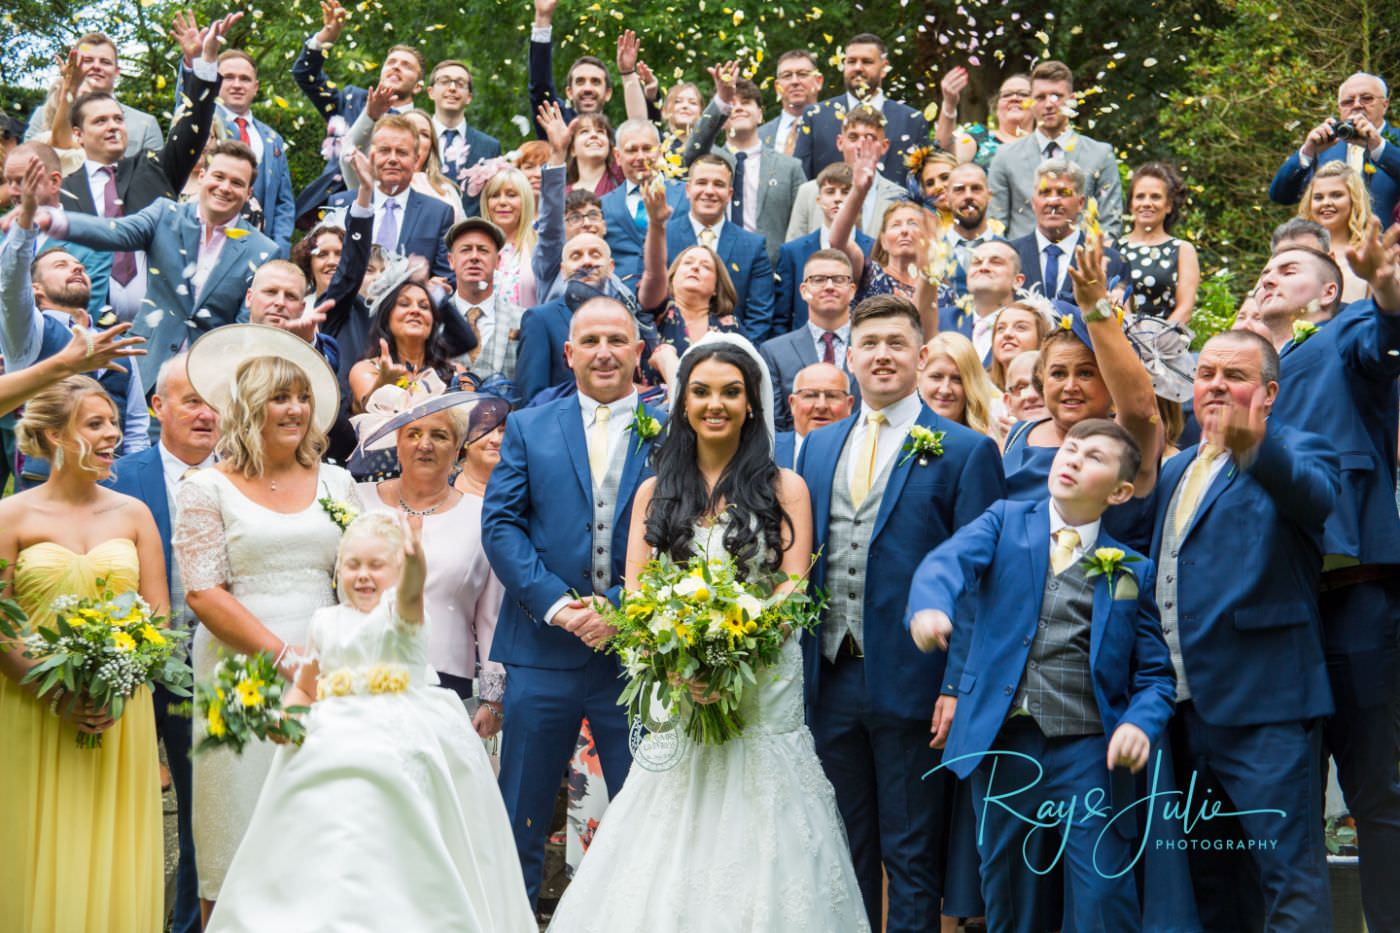 Wedding confetti photograph taken outside Saltmarshe Hall wedding venue